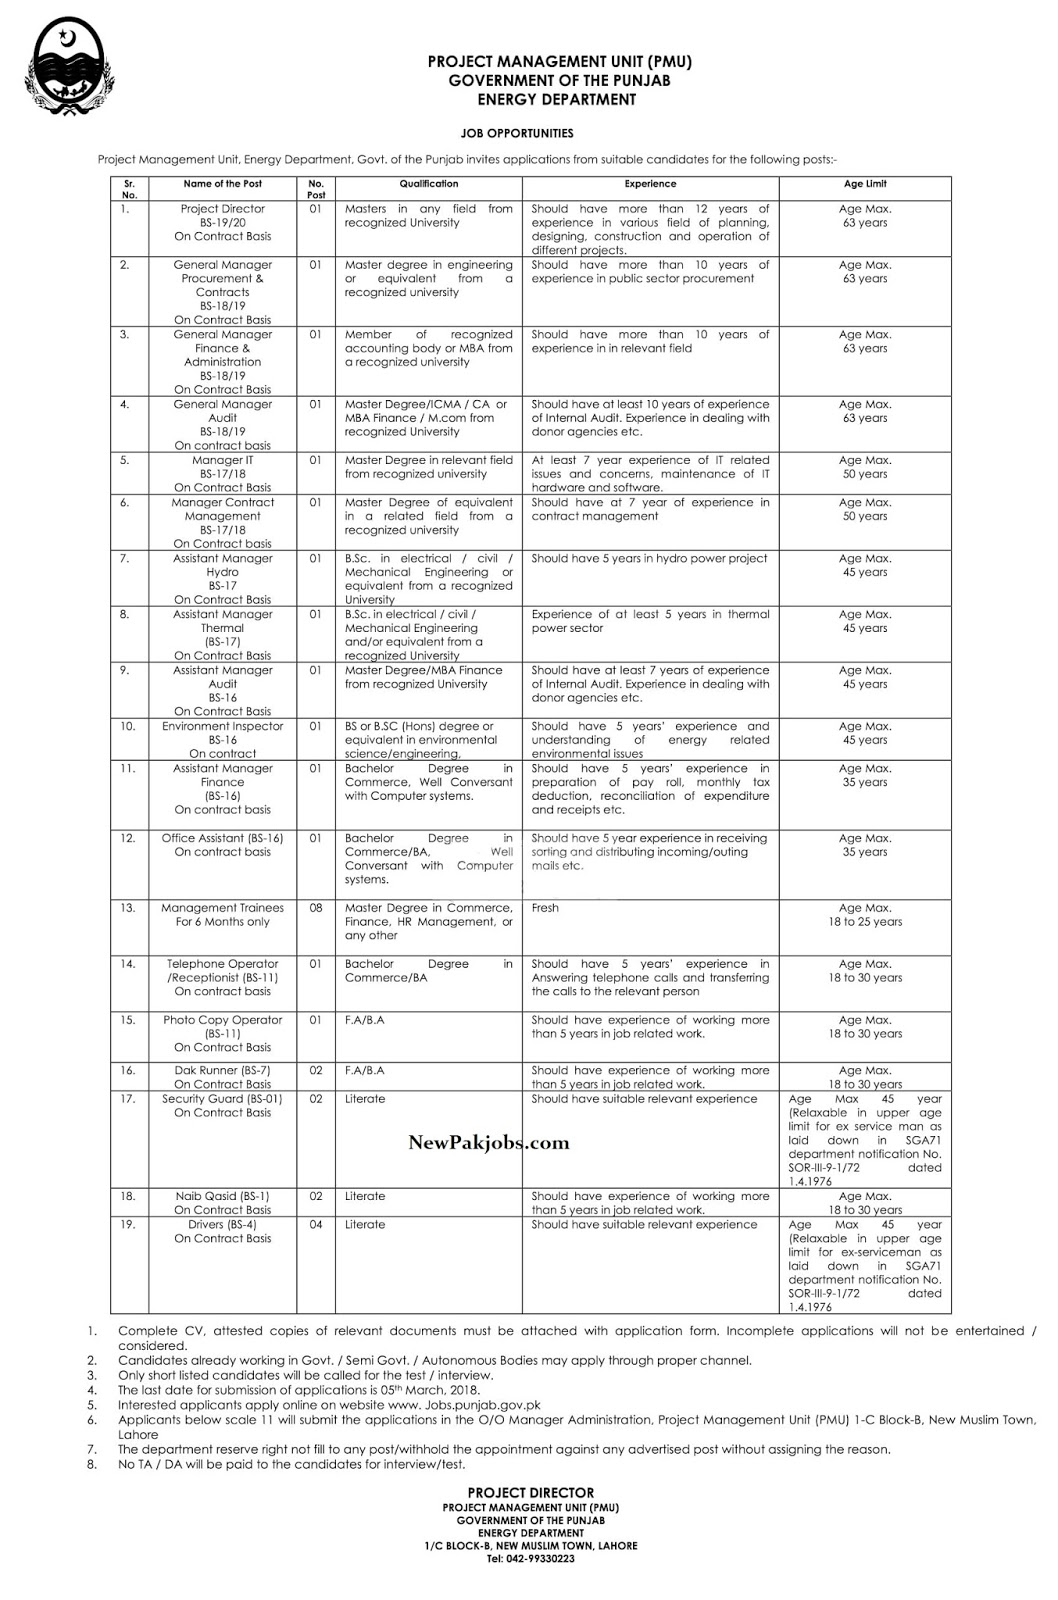 jobs-in-energy-department-online